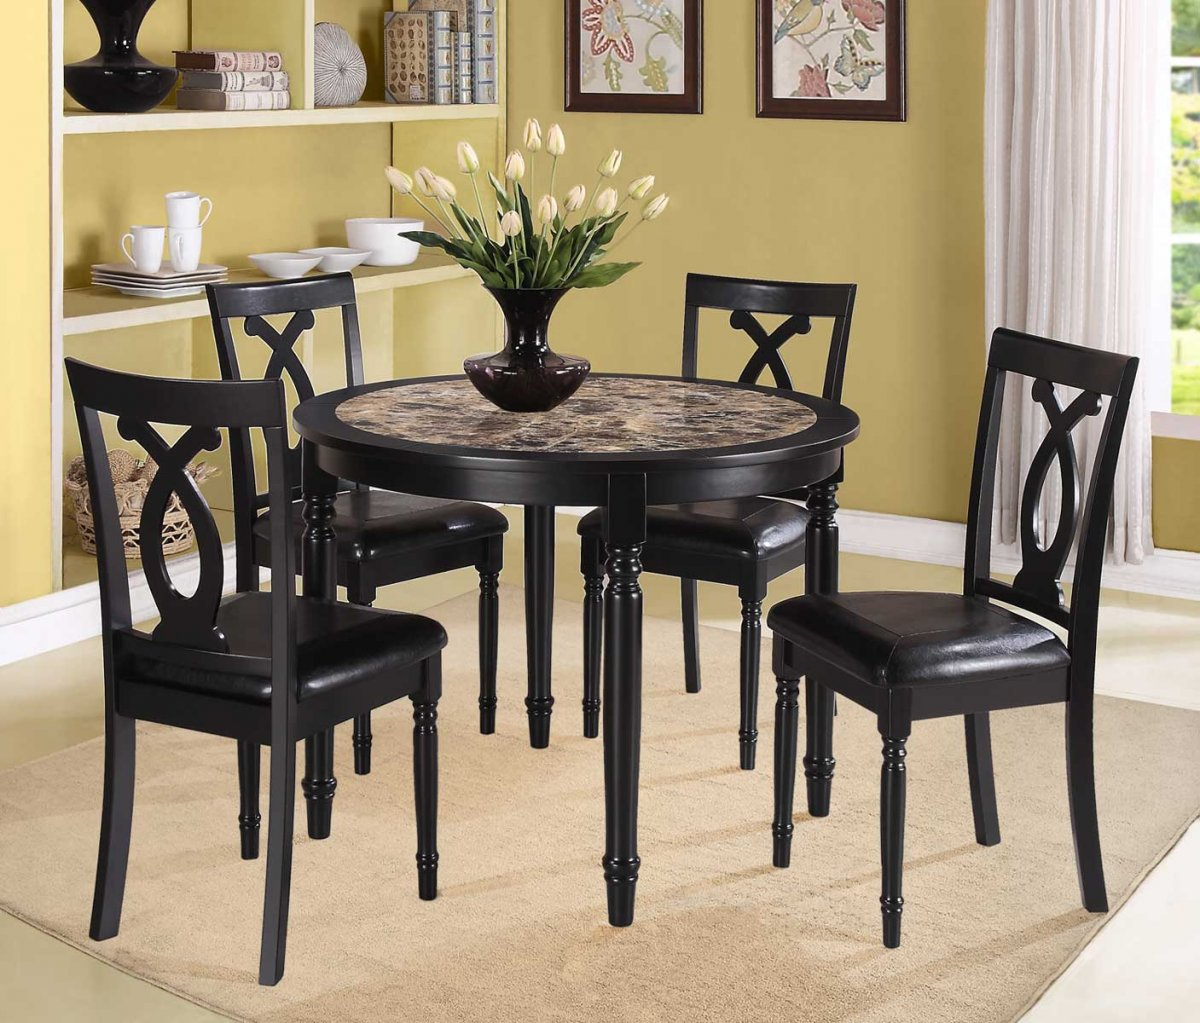 casual dining room design with piece piper espresso round dinette set faux marble center tabletops black vinyl wrapped chairs solid oak wood accent table top breakfast console